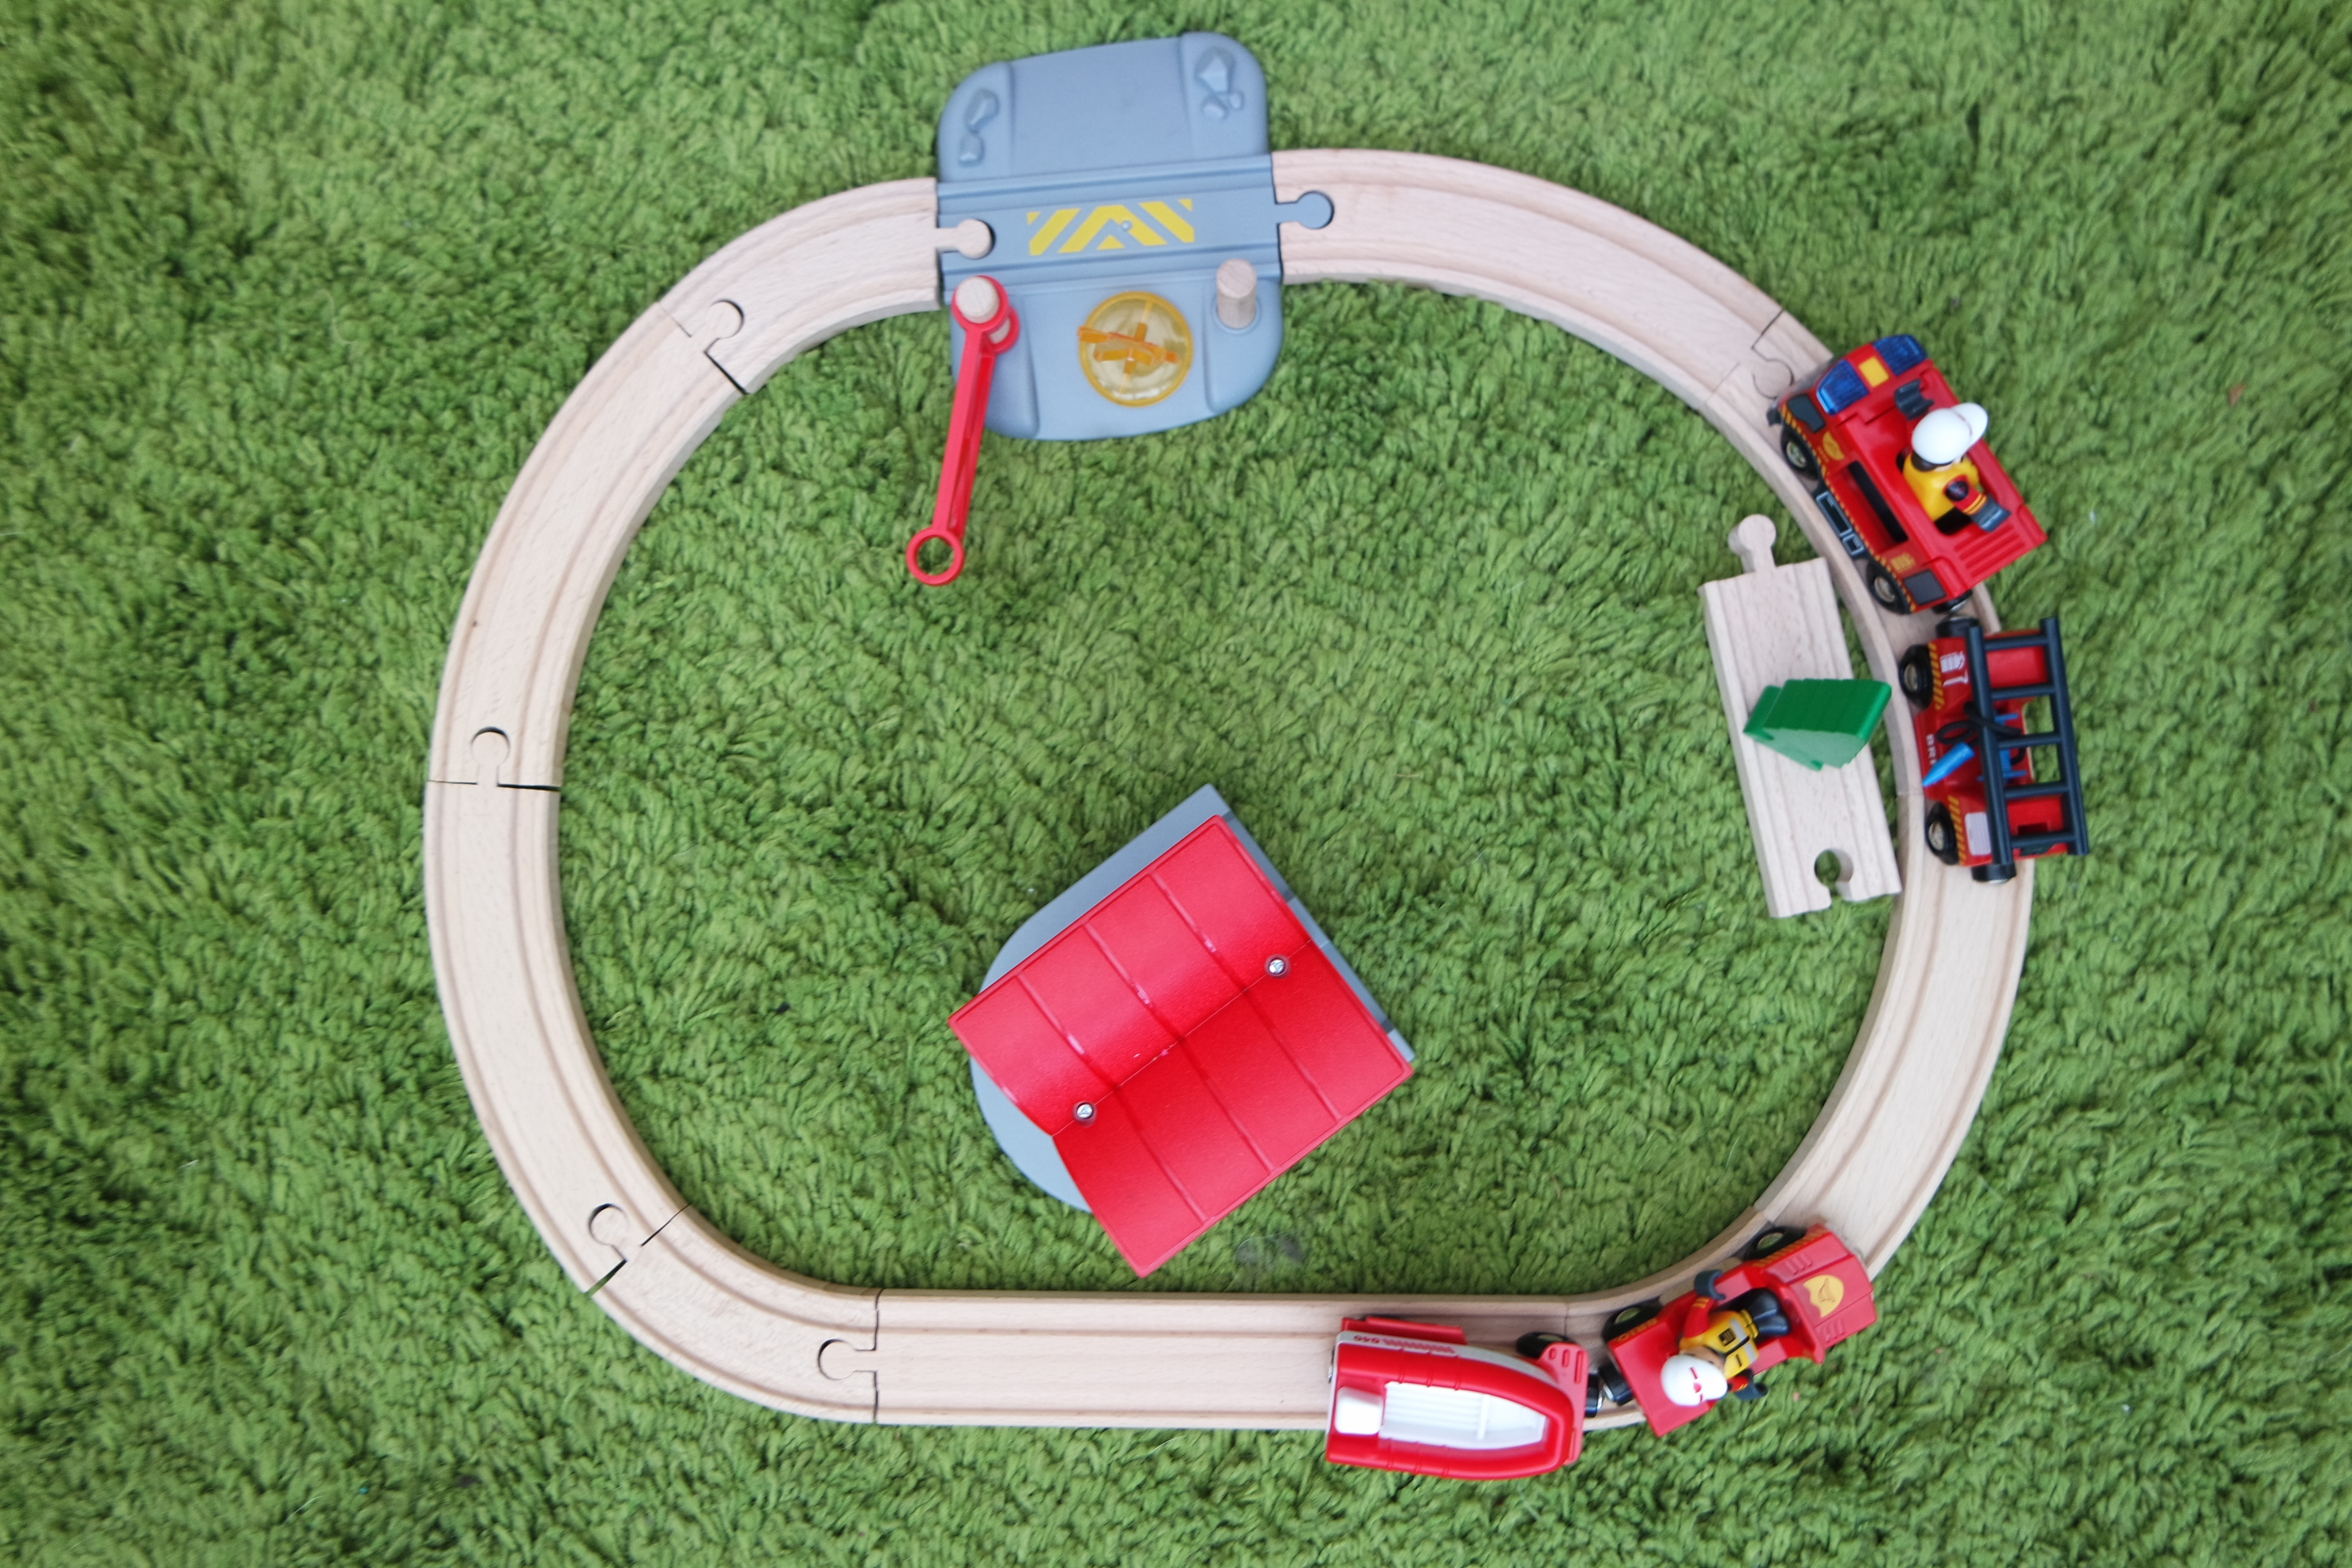 BRIO fire and rescue wooden toys